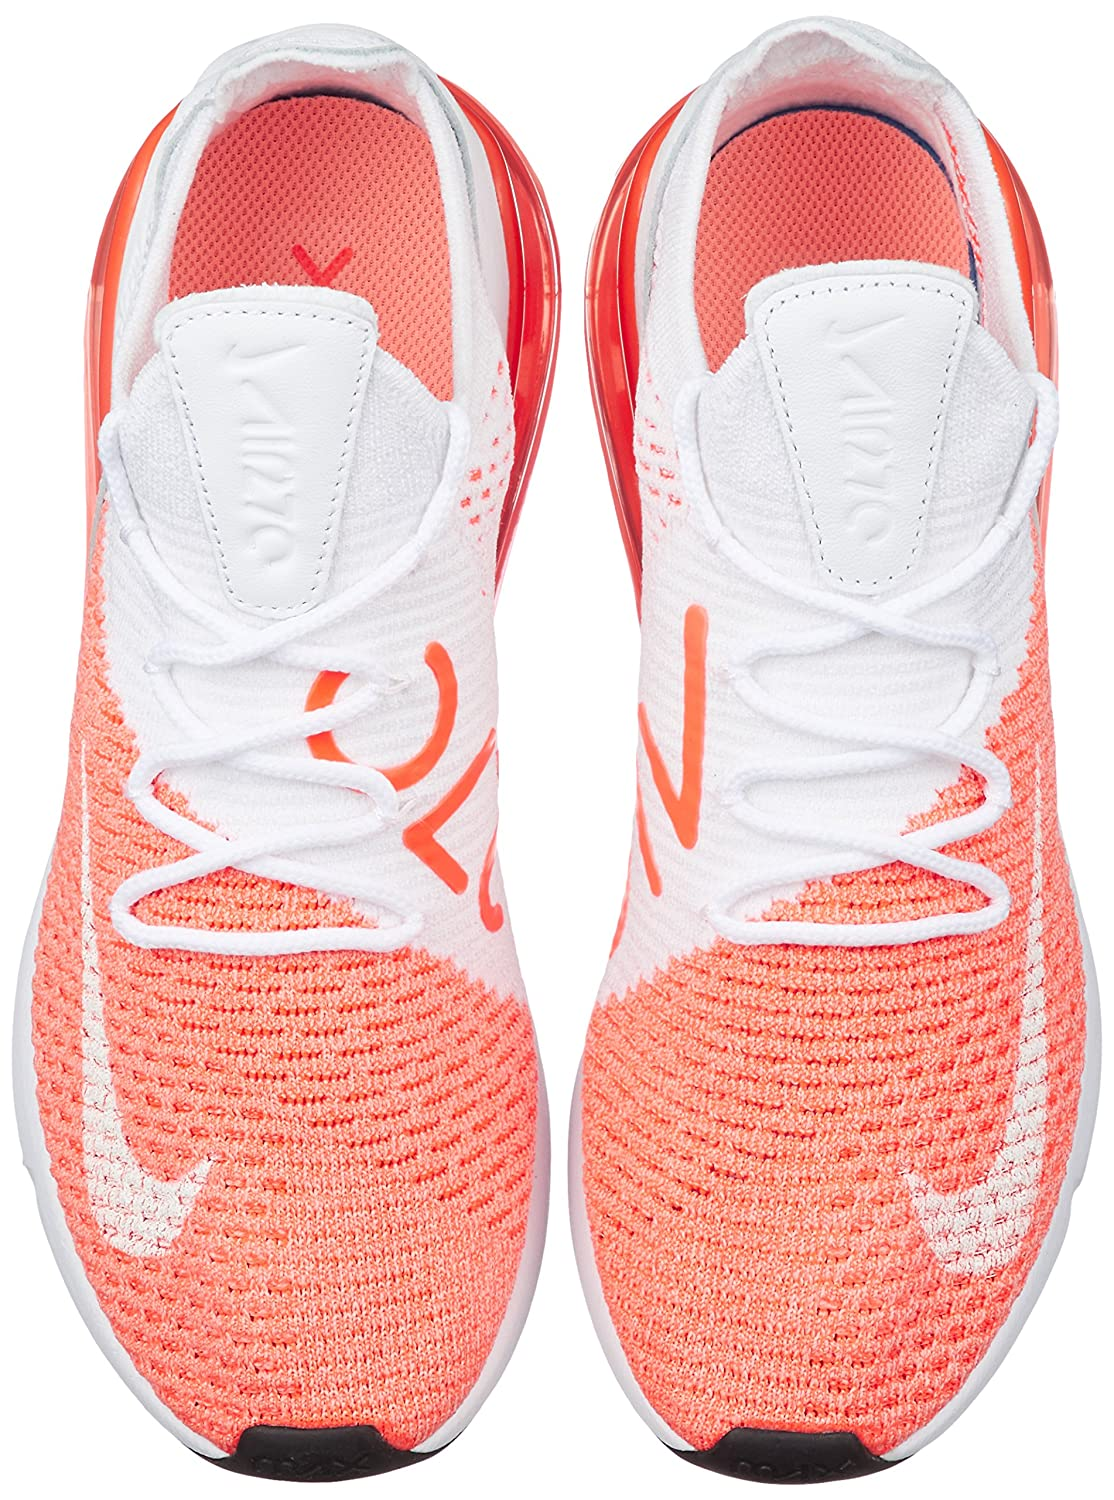 uk availability ee383 fdd46 NIKE Women's WMNS Air Max 270 Flyknit, Crimson Pulse/White, 6 US